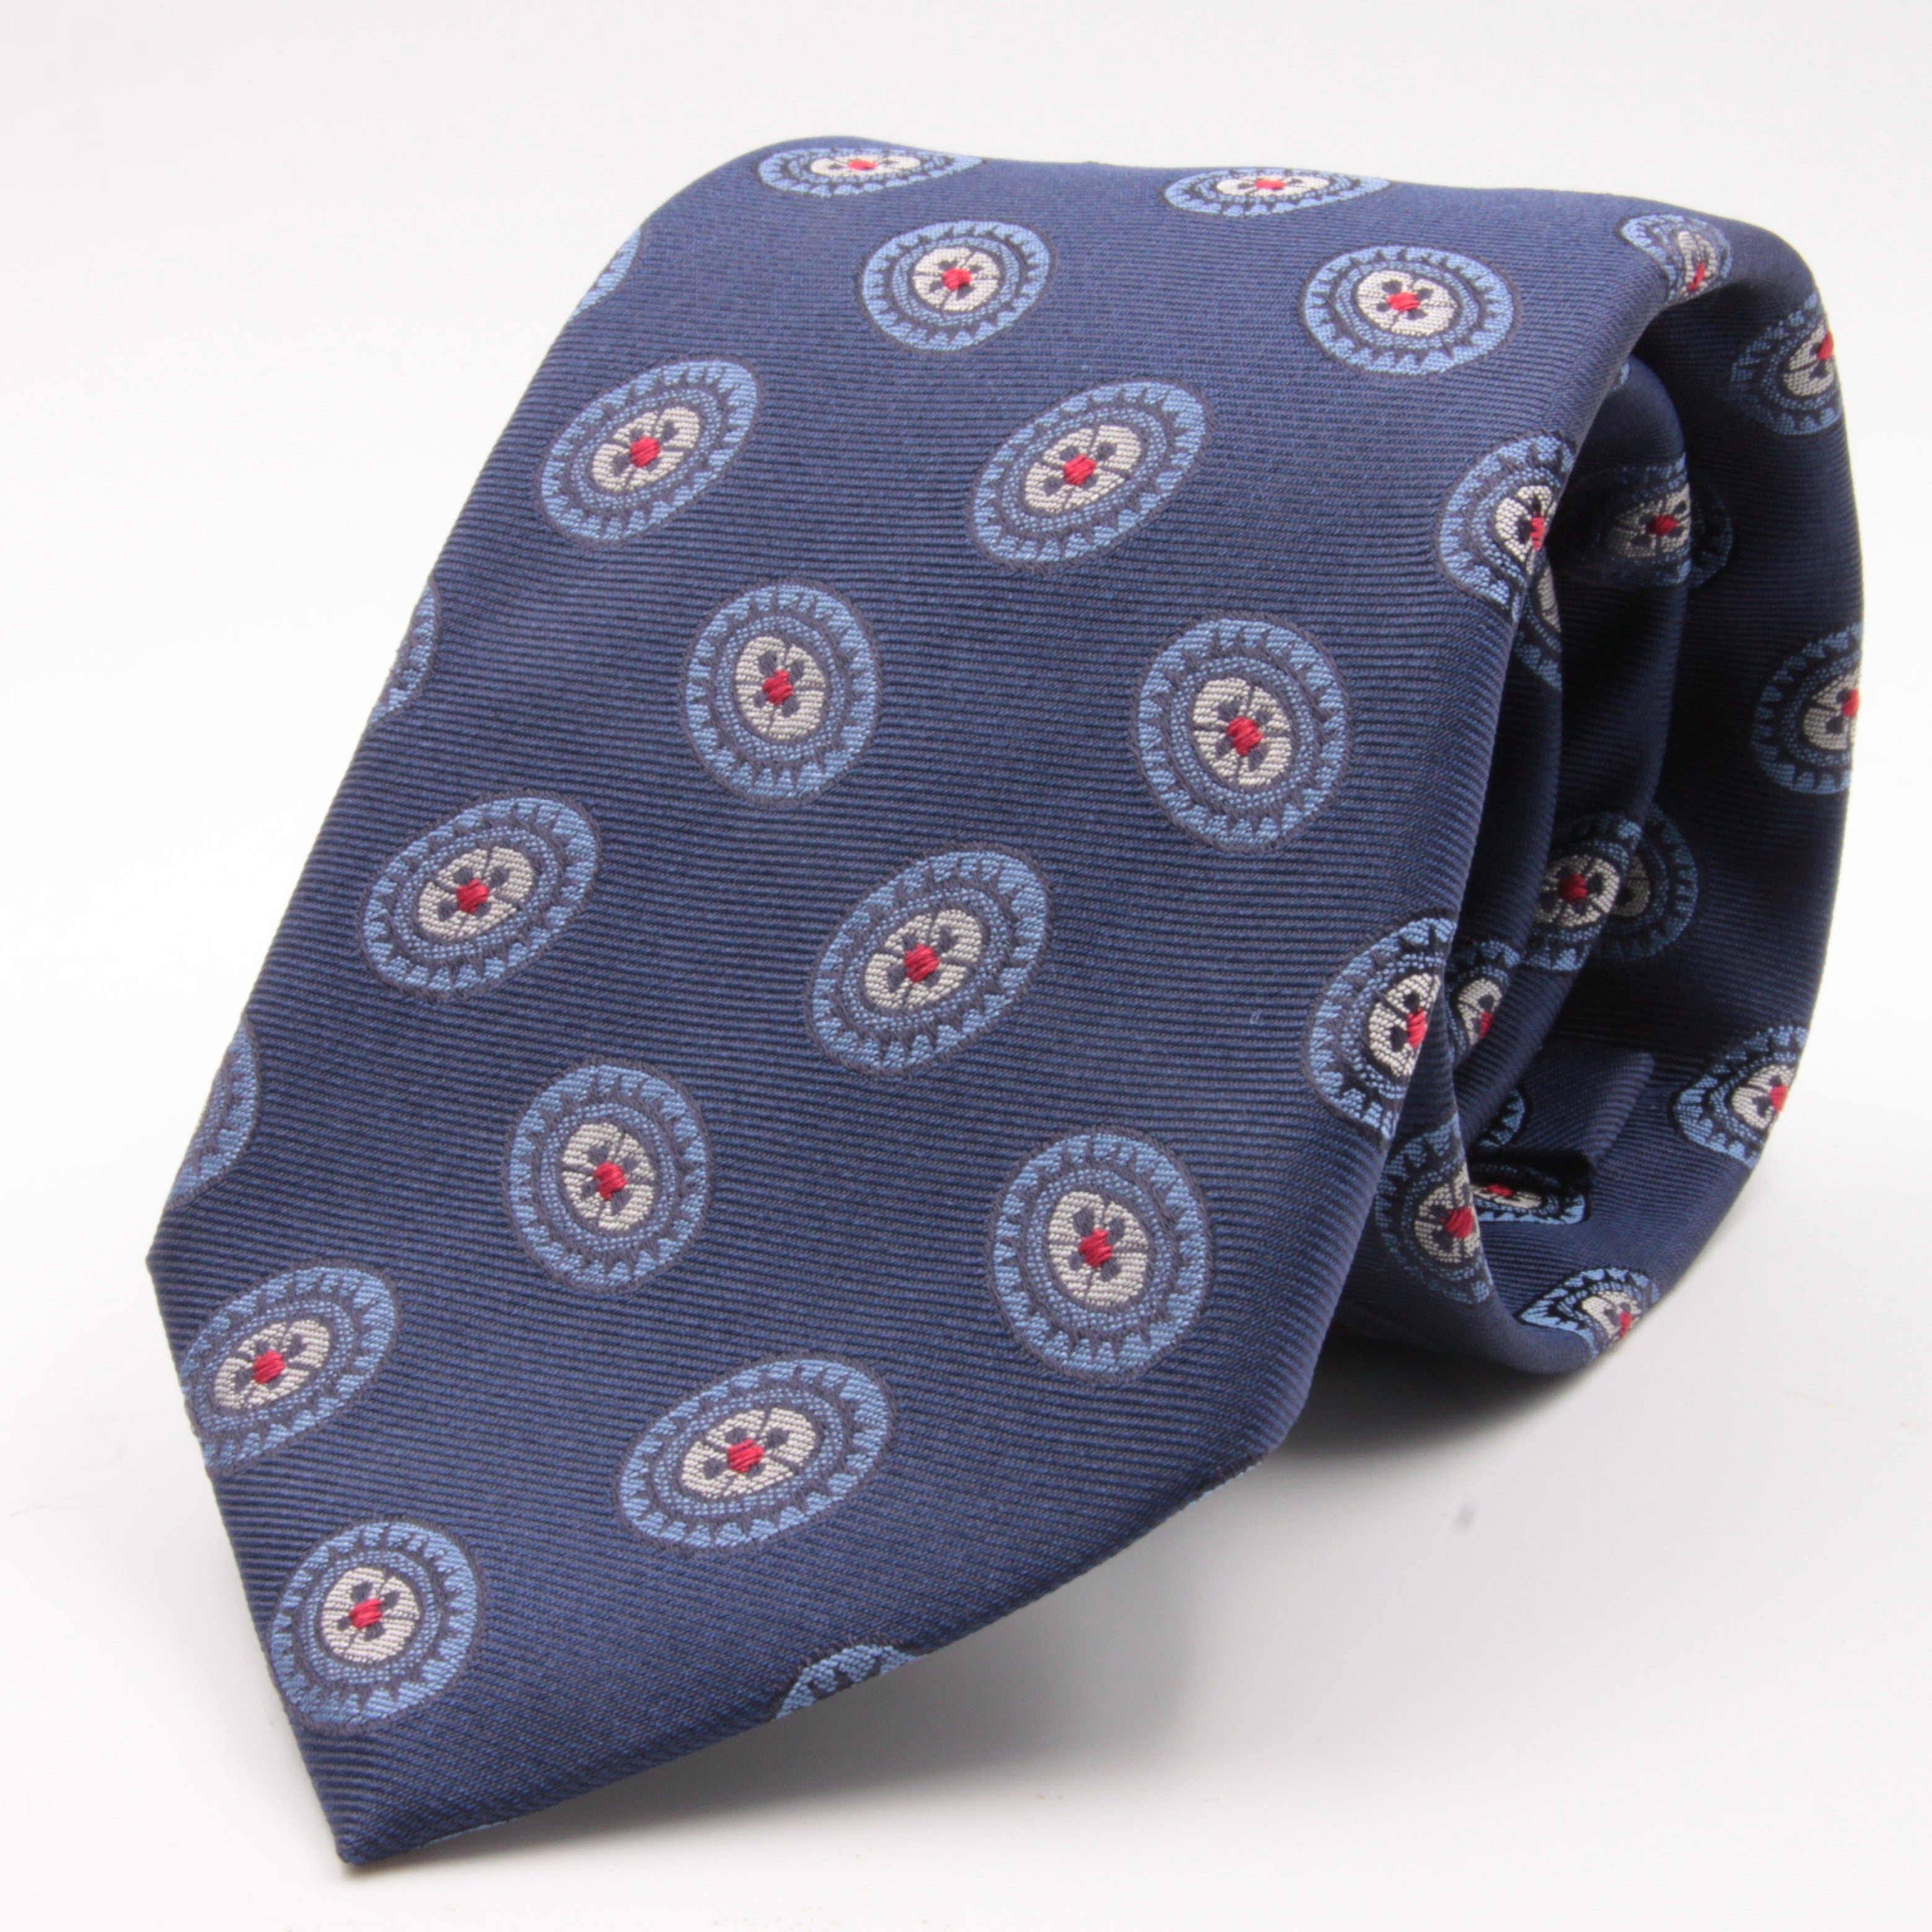 Cruciani & Bella 100% Silk Jacquard  Blue, Light Blue, Red and White Medallions Tie Handmade in Italy 8 cm x 150 cm #3779